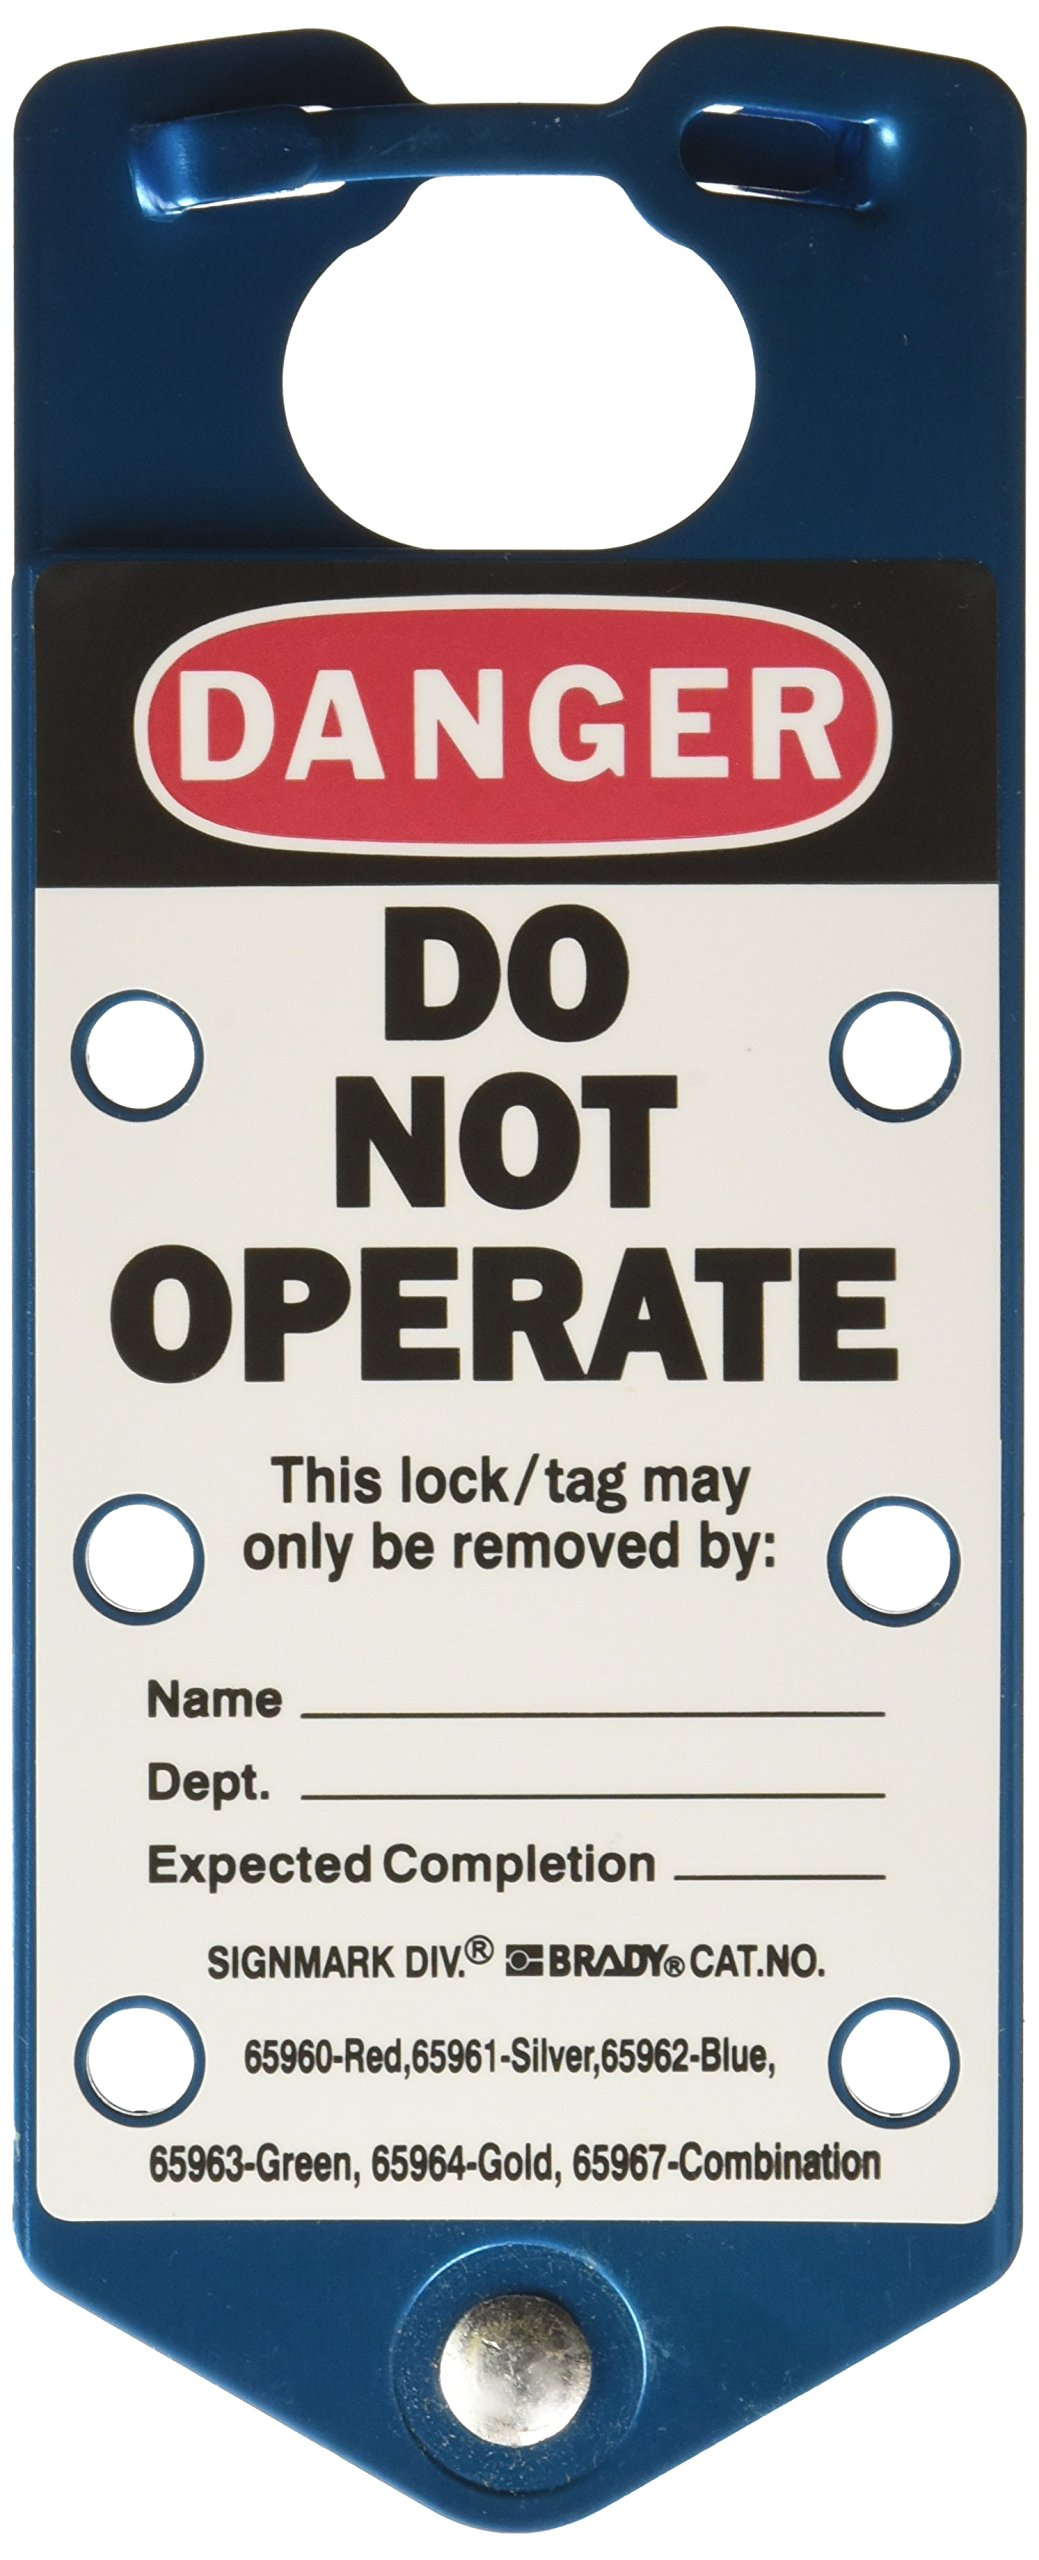 Brady 65962, Labeled Lockout Hasps,'' Height x'' Width, Blue, Legend''Danger Do Not Operate.Etc'' (5 per Package)